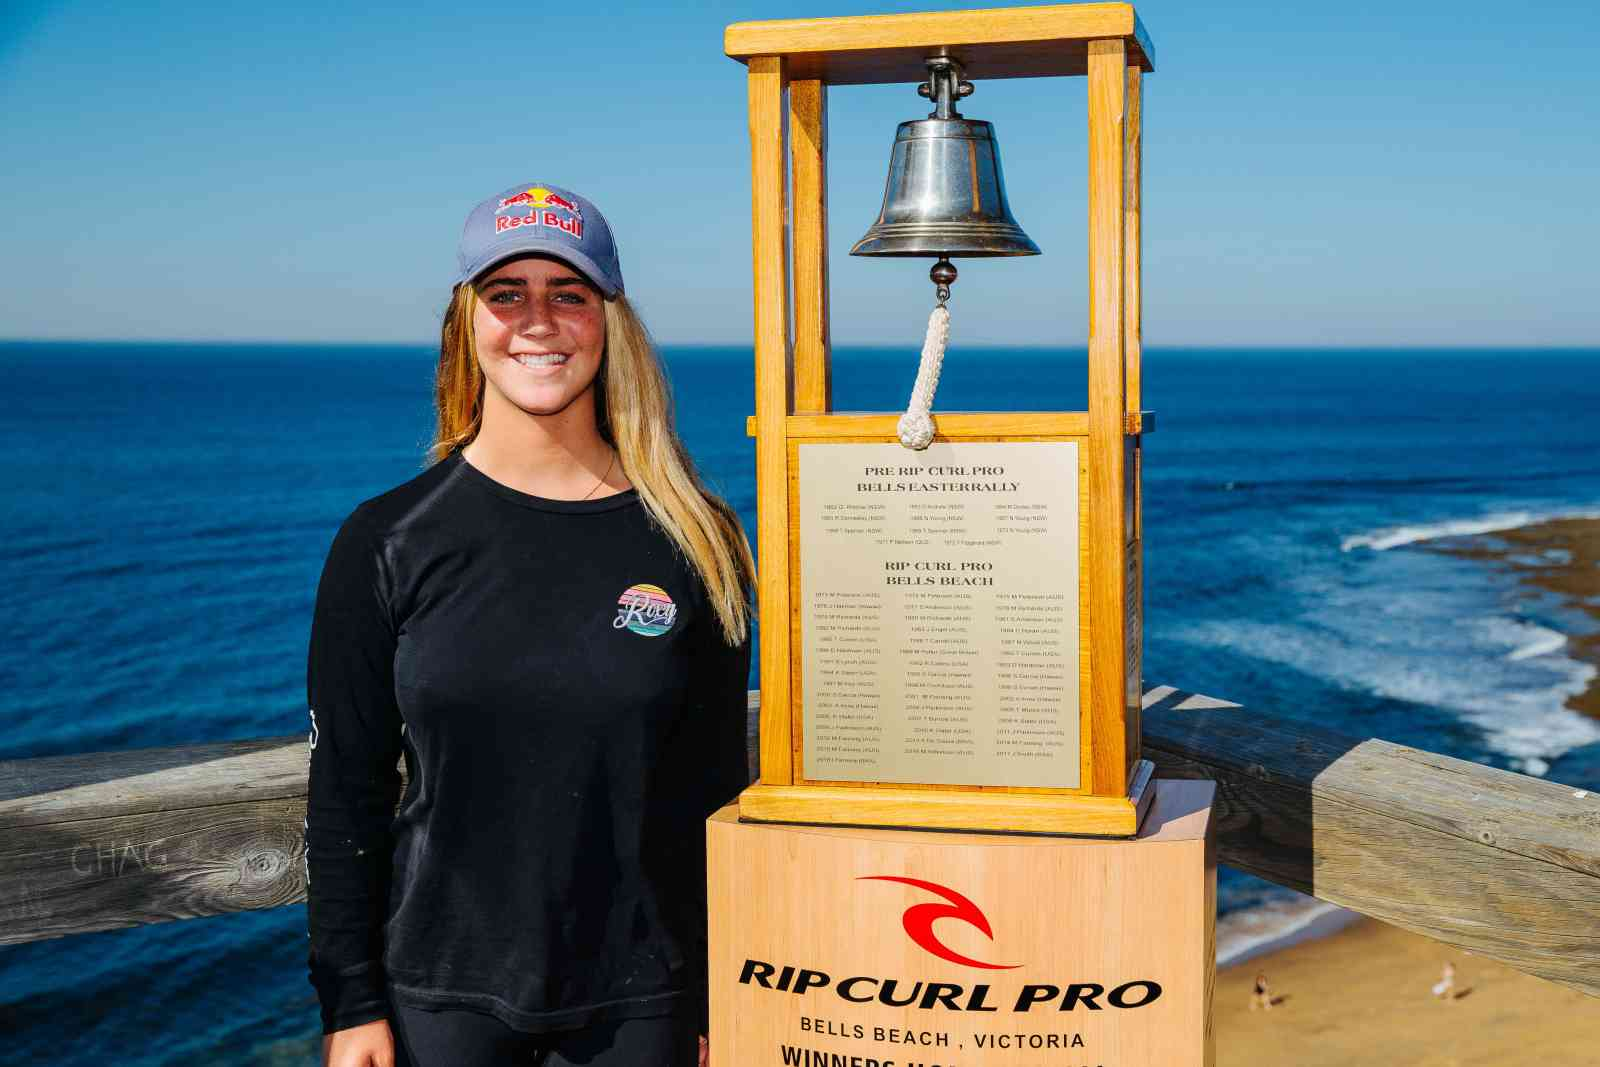 Caroline Marks of USA at the Press Session at Bells Beach on April 3, 2019 in Victoria, Australia.